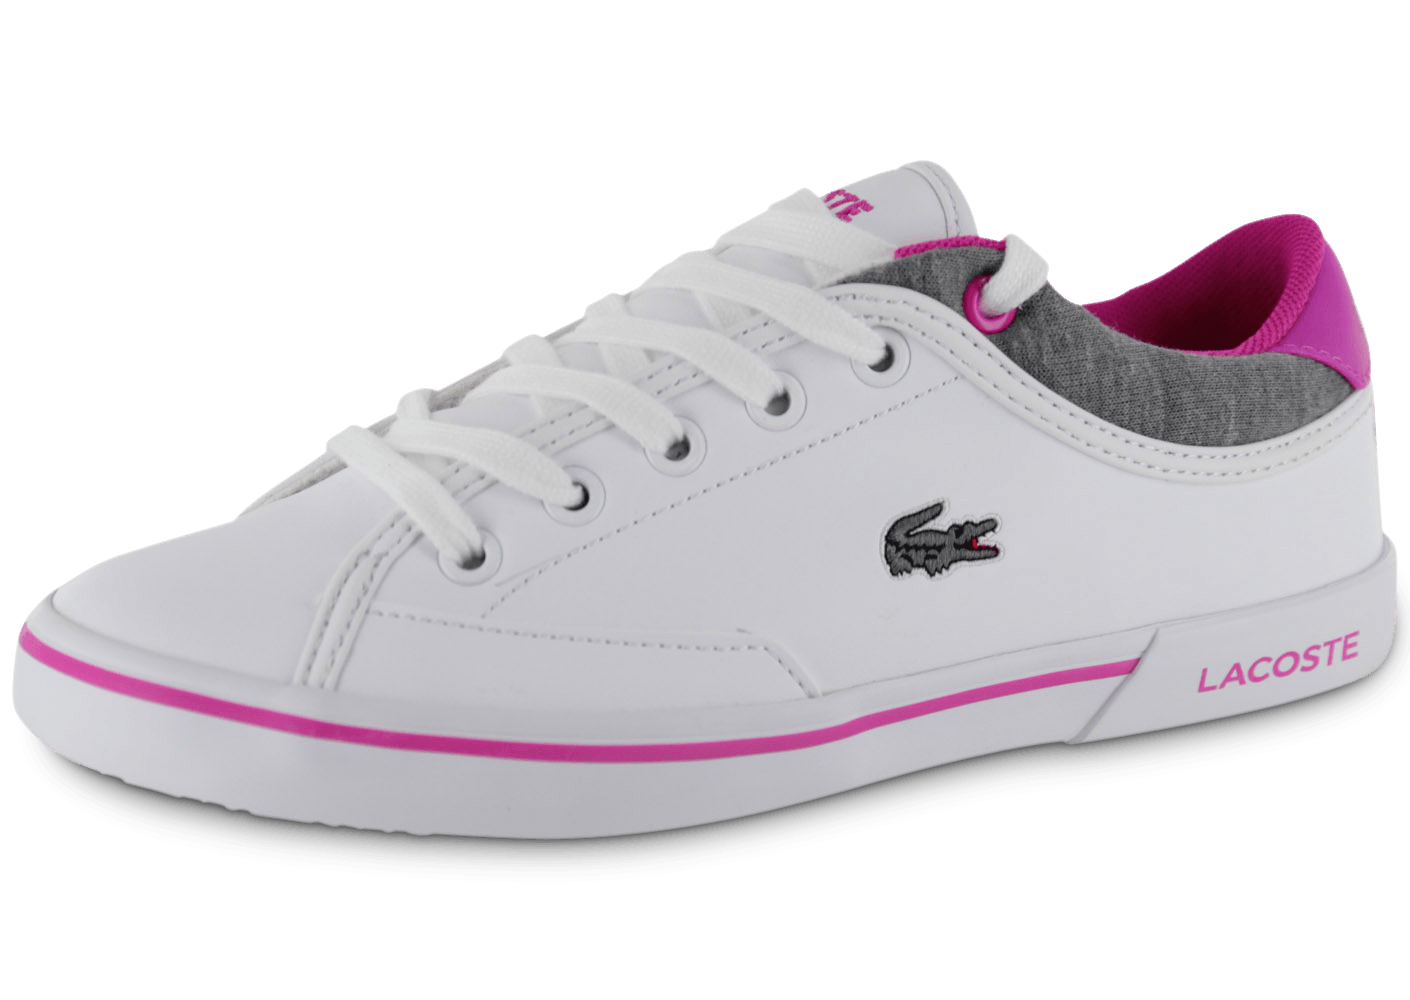 lacoste angha enfant blanc rose chaussures chaussures chausport. Black Bedroom Furniture Sets. Home Design Ideas